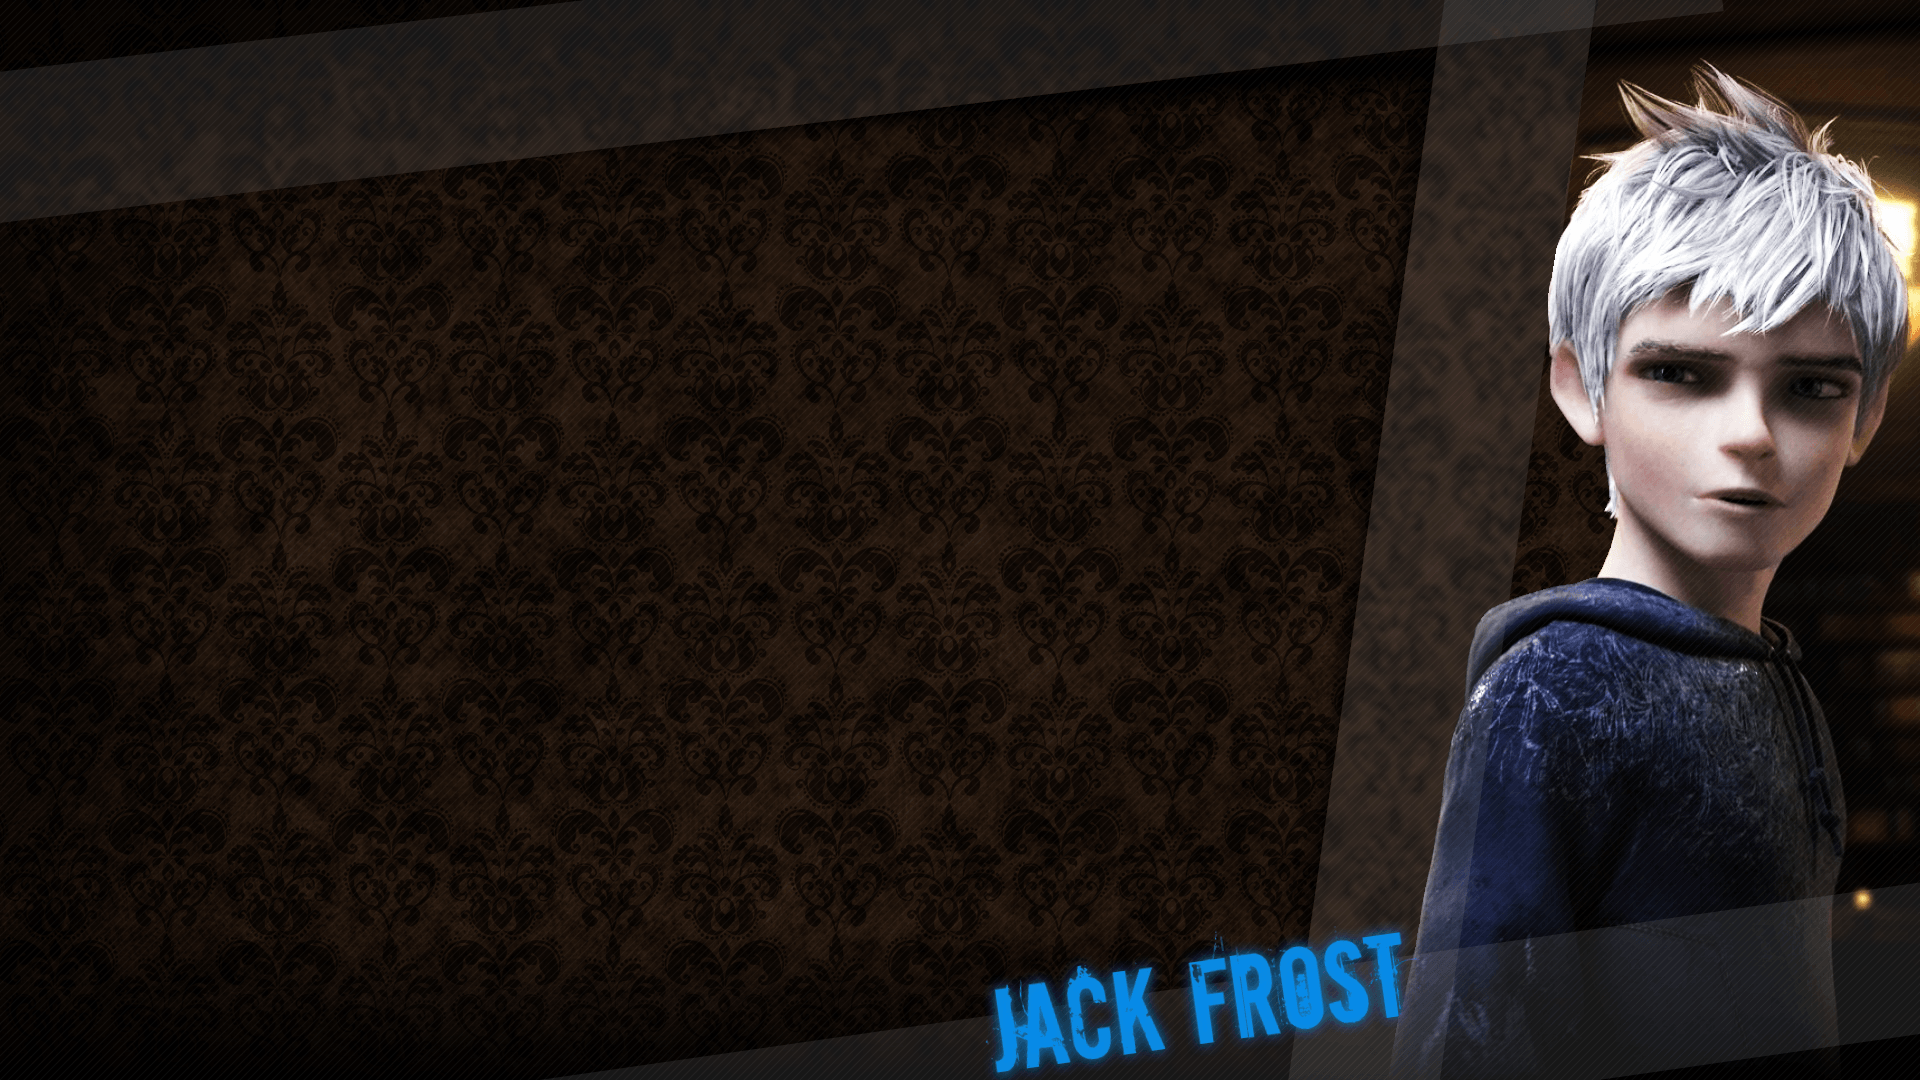 Jack frost wallpapers wallpaper cave rise of the guardians jack frost wallpaper cartoons wallpaper thecheapjerseys Gallery